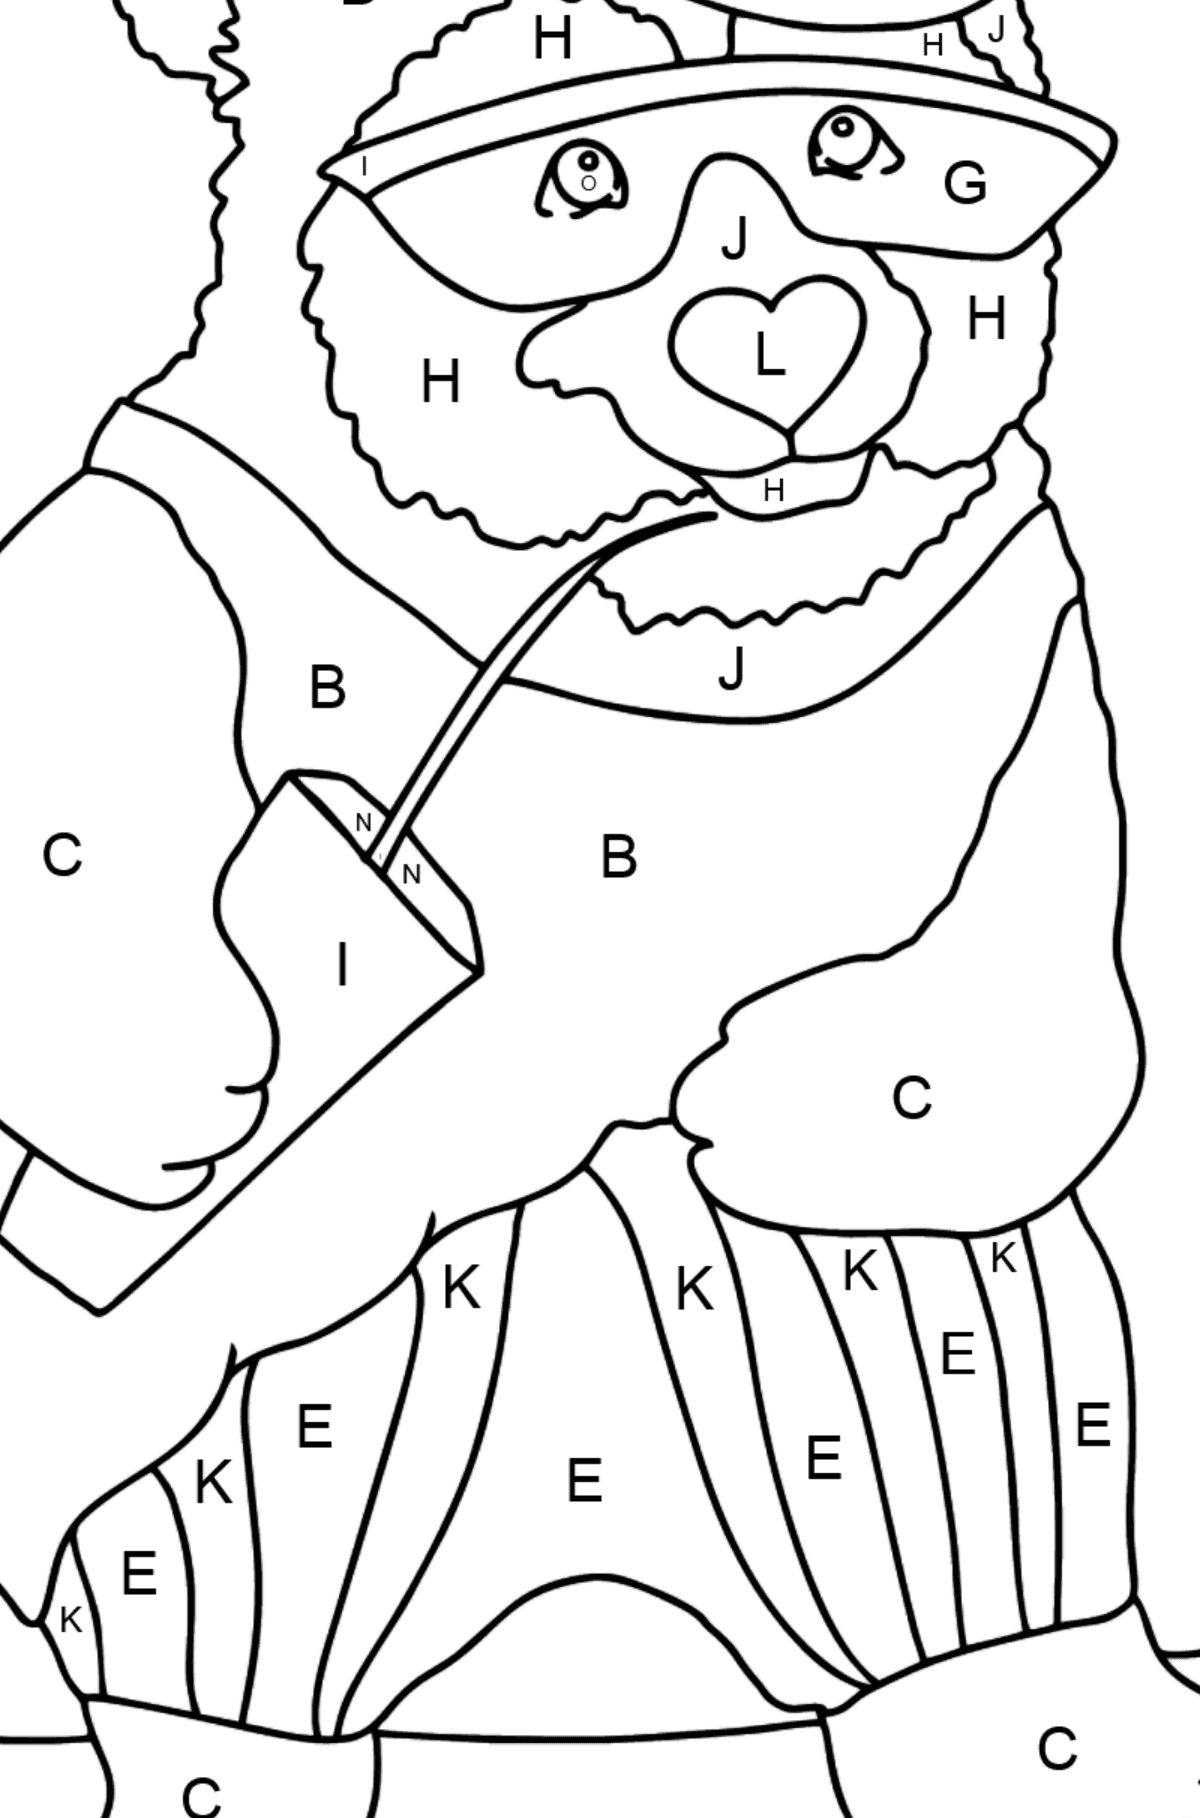 Coloring Page - A Panda in Sunglasses - Coloring by Letters for Kids